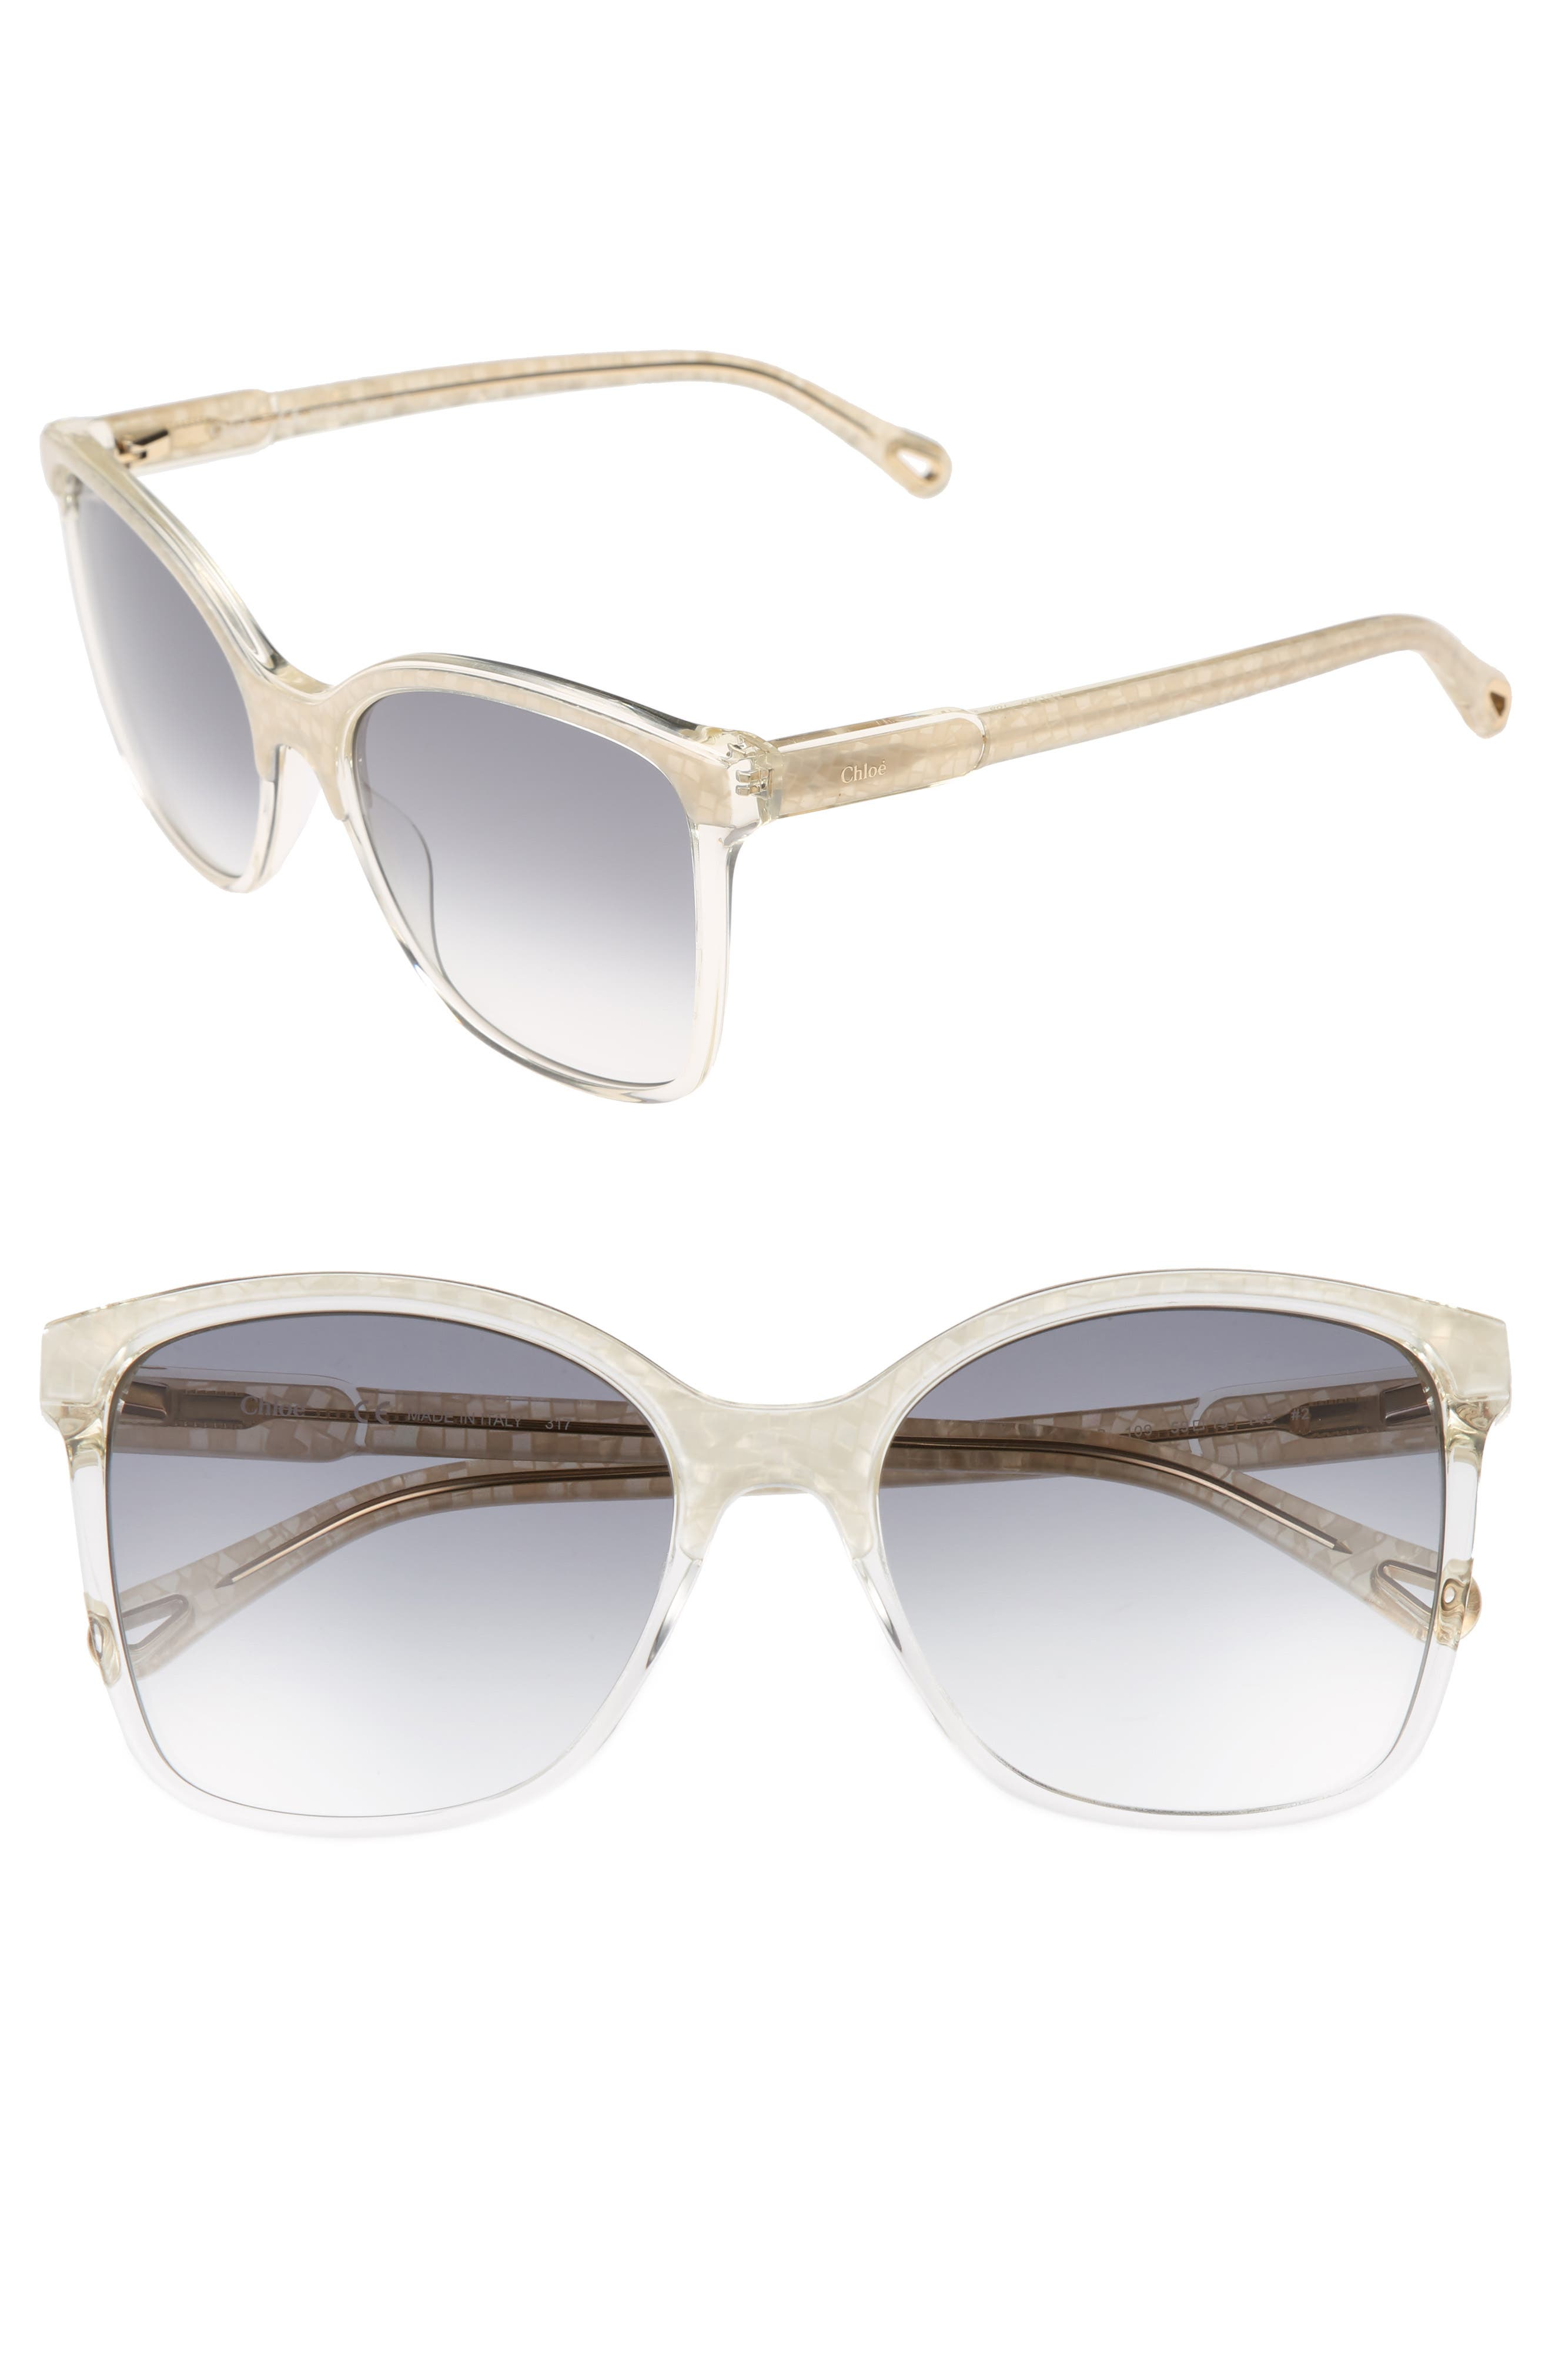 59mm Brow Bar Sunglasses,                         Main,                         color, Pearl/ Champagne